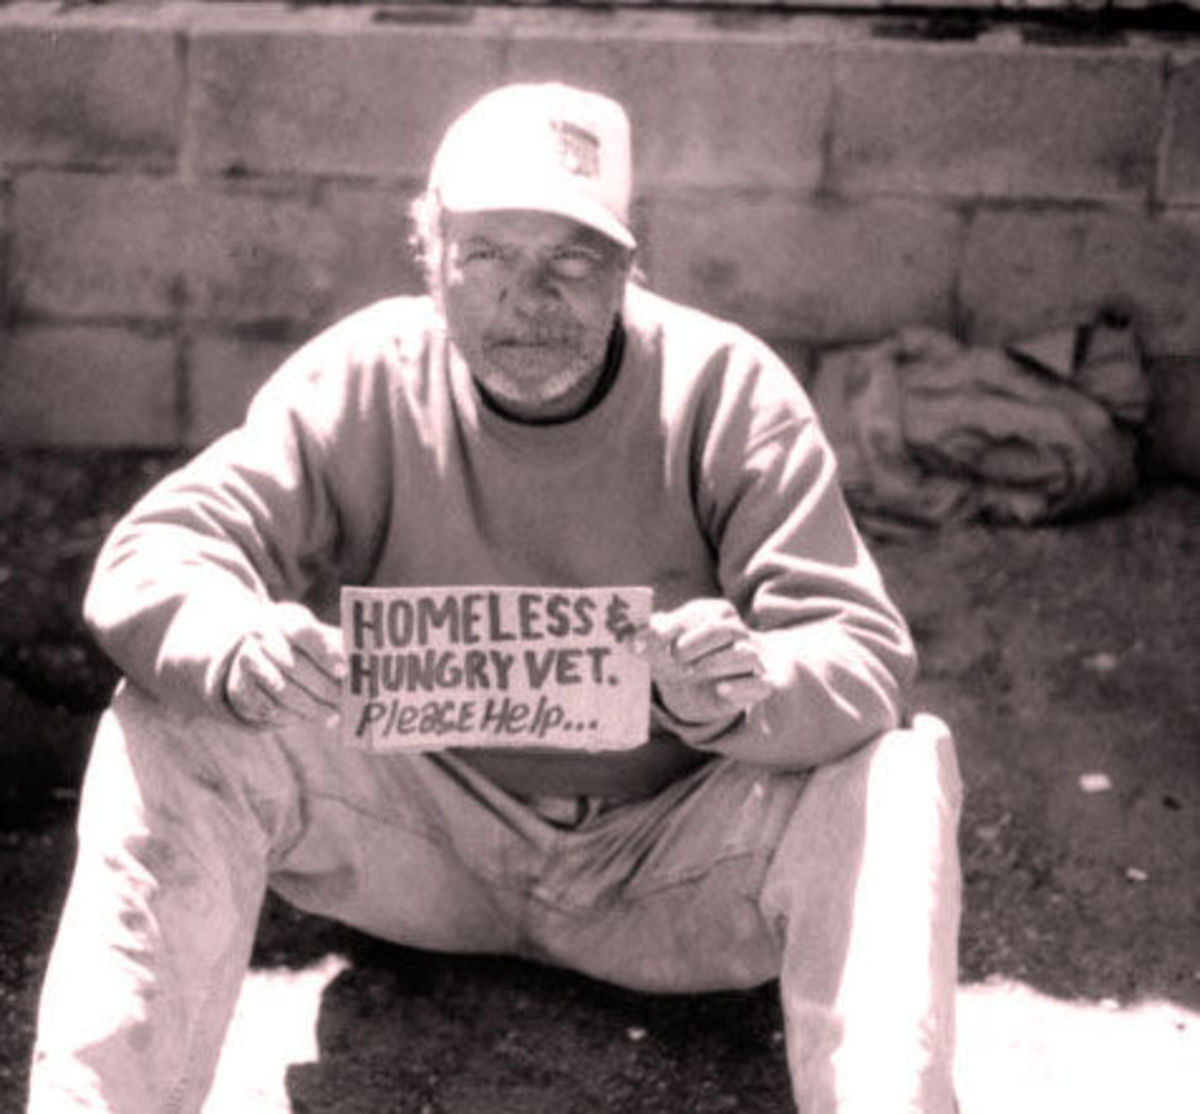 Homeless veterans should never be treated as if they have outlived their usefulness.  These are people who have earned our respect, not our disdain or pity.